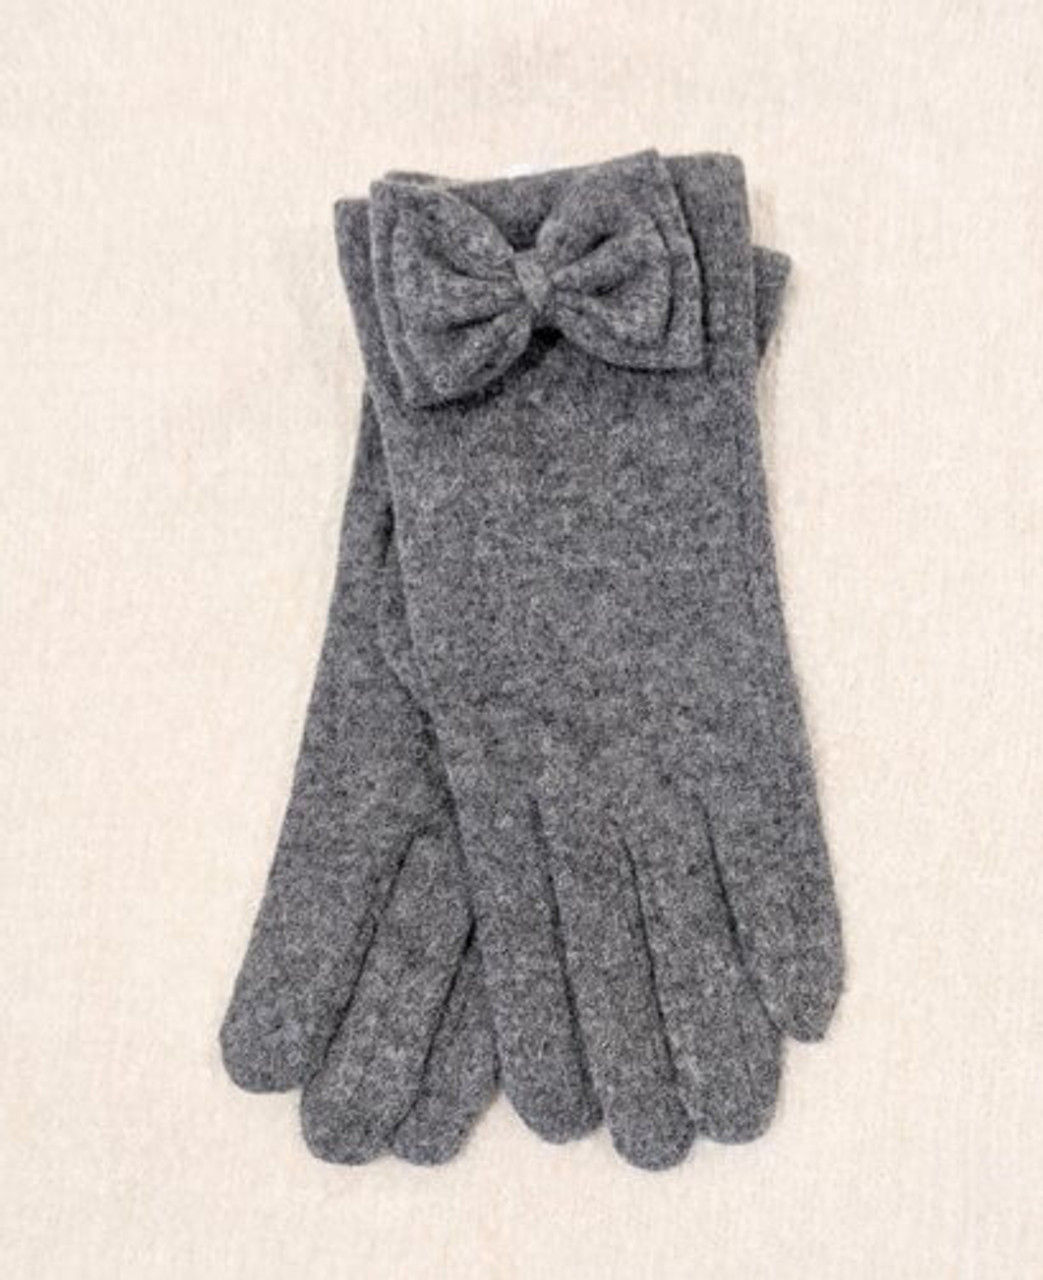 The Harper Wool Bow Glove is ultra-chic and will keep you warm and toasty during the cold weather months. The texting feature makes it so you can use your phone without taking your gloves off! One size fits most.